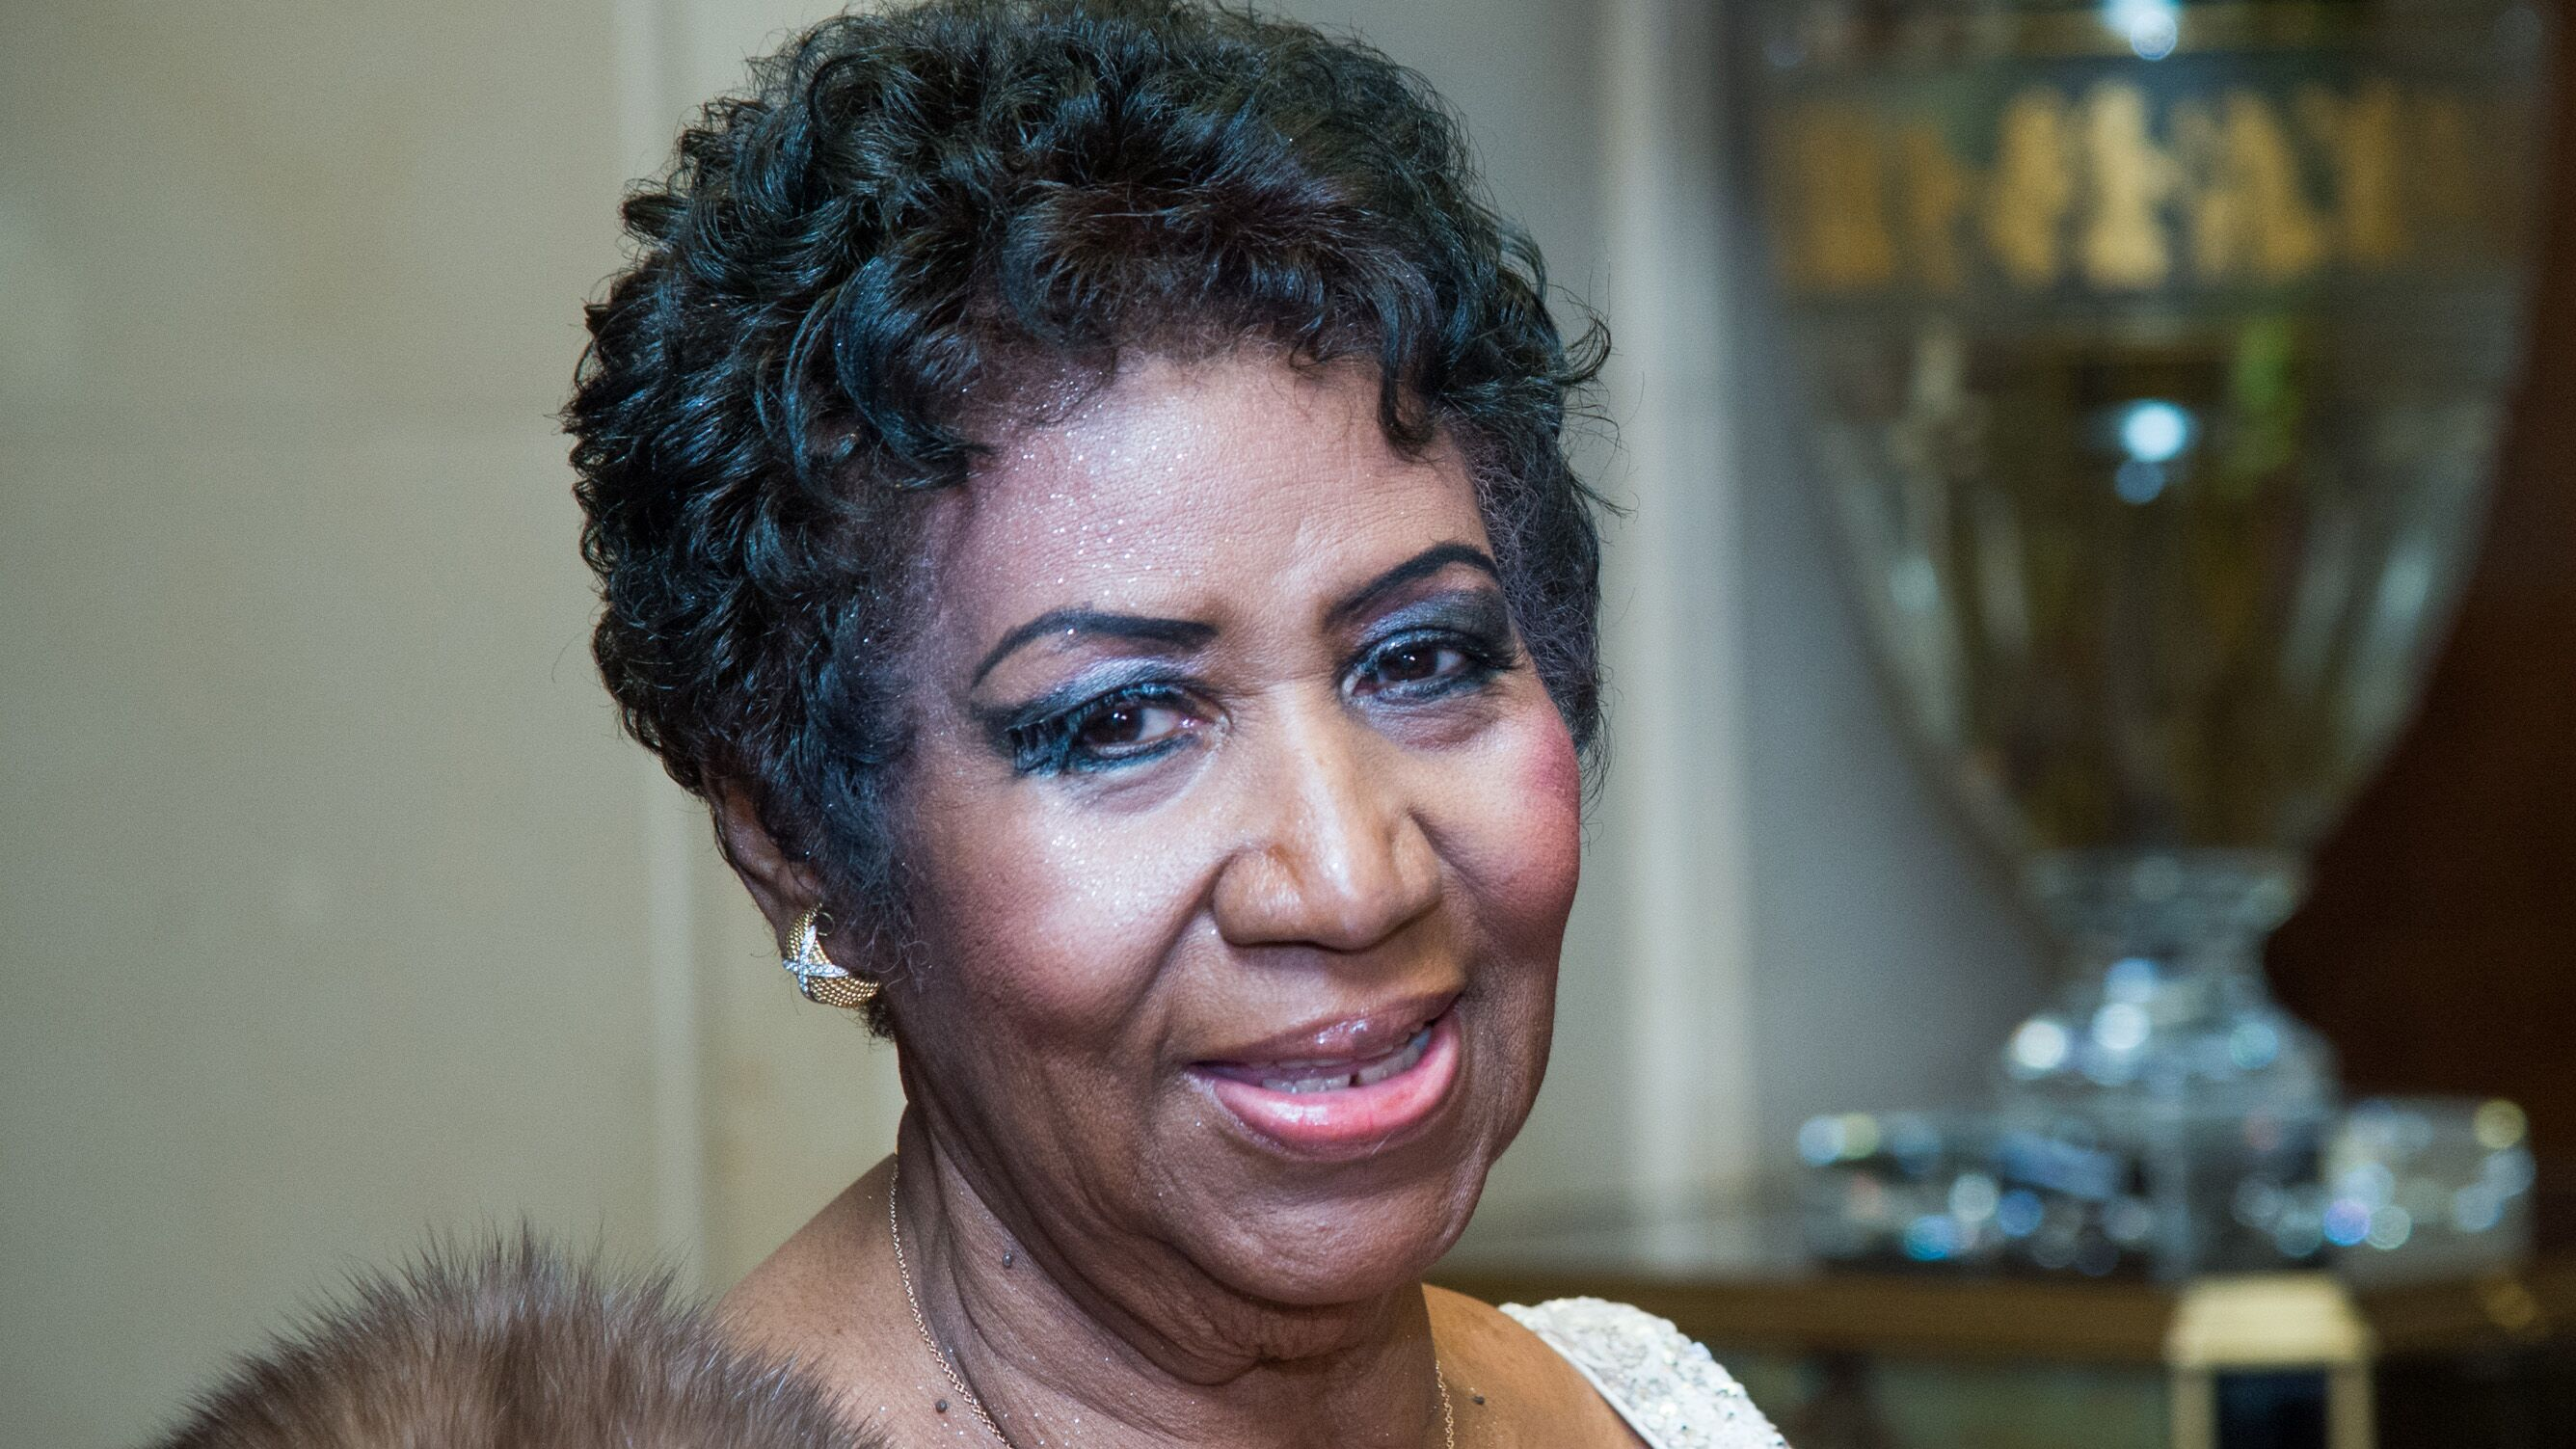 10 citations inspirantes de la légende de la musique gospel: Aretha Franklin